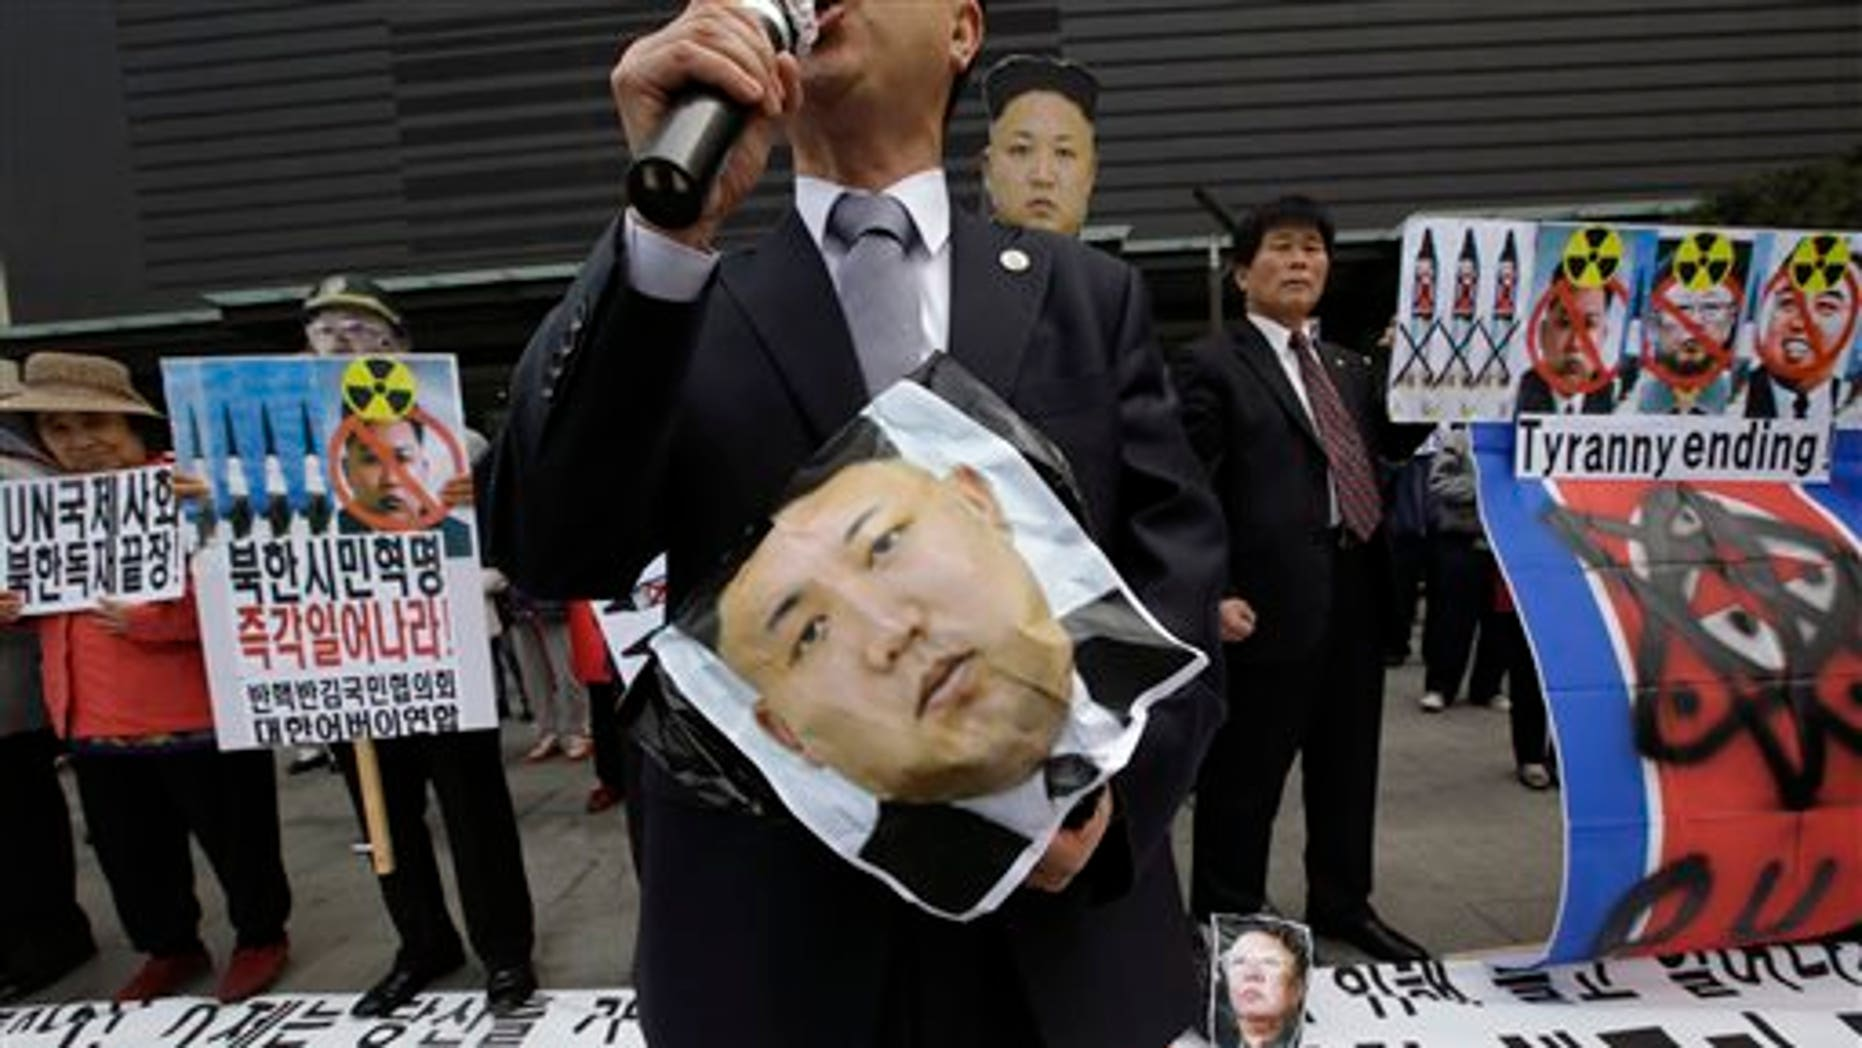 """South Korean protesters hold a picture of North Korean leader Kim Jong Un during an anti-North Korea rally against recent missile launches and provocative acts, on the birthday of its founder, Kim Il Sung, in Seoul, South Korea, Tuesday, April 15, 2014. The banners read: """"Denounce North Korea's dictatorship."""" (AP Photo/Lee Jin-man)"""